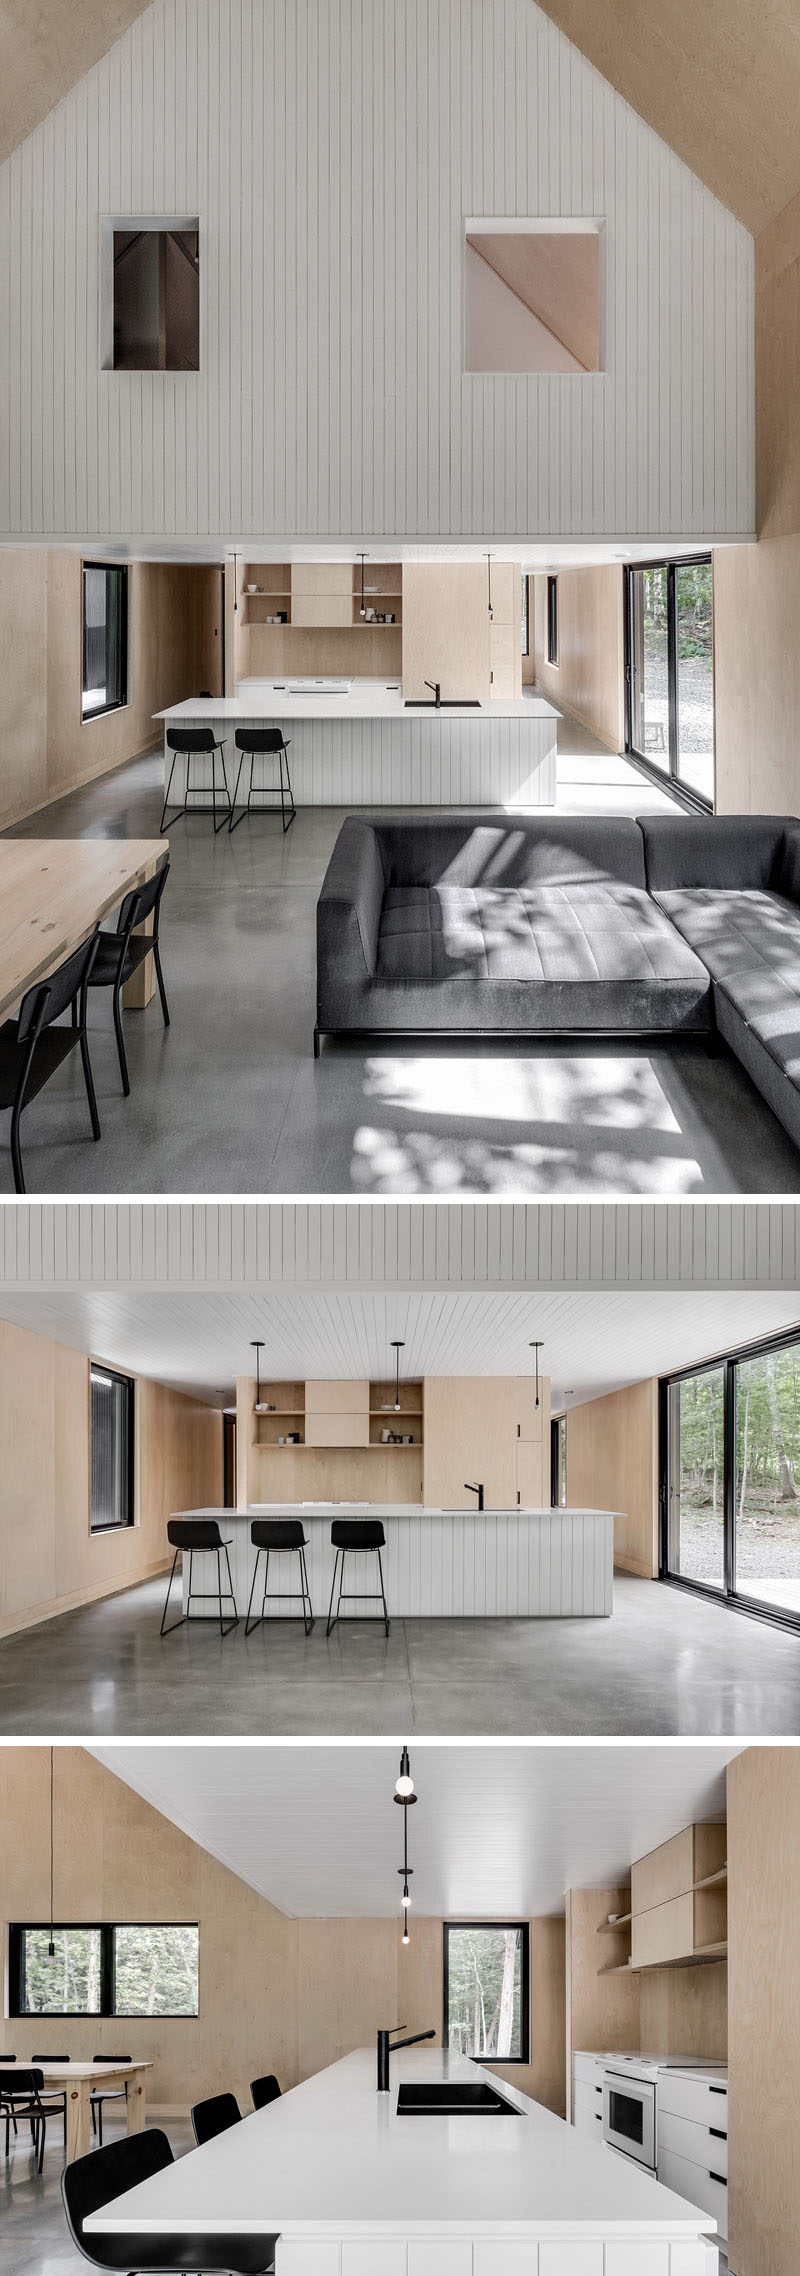 Inside this modern cottage, a high vaulted ceiling creates a sense of openness, while the kitchen is located behind the dining room and living room, and underneath the upper floor of the home.#VaultedCeiling #KitchenDesign #WhiteAndWoodKitchen